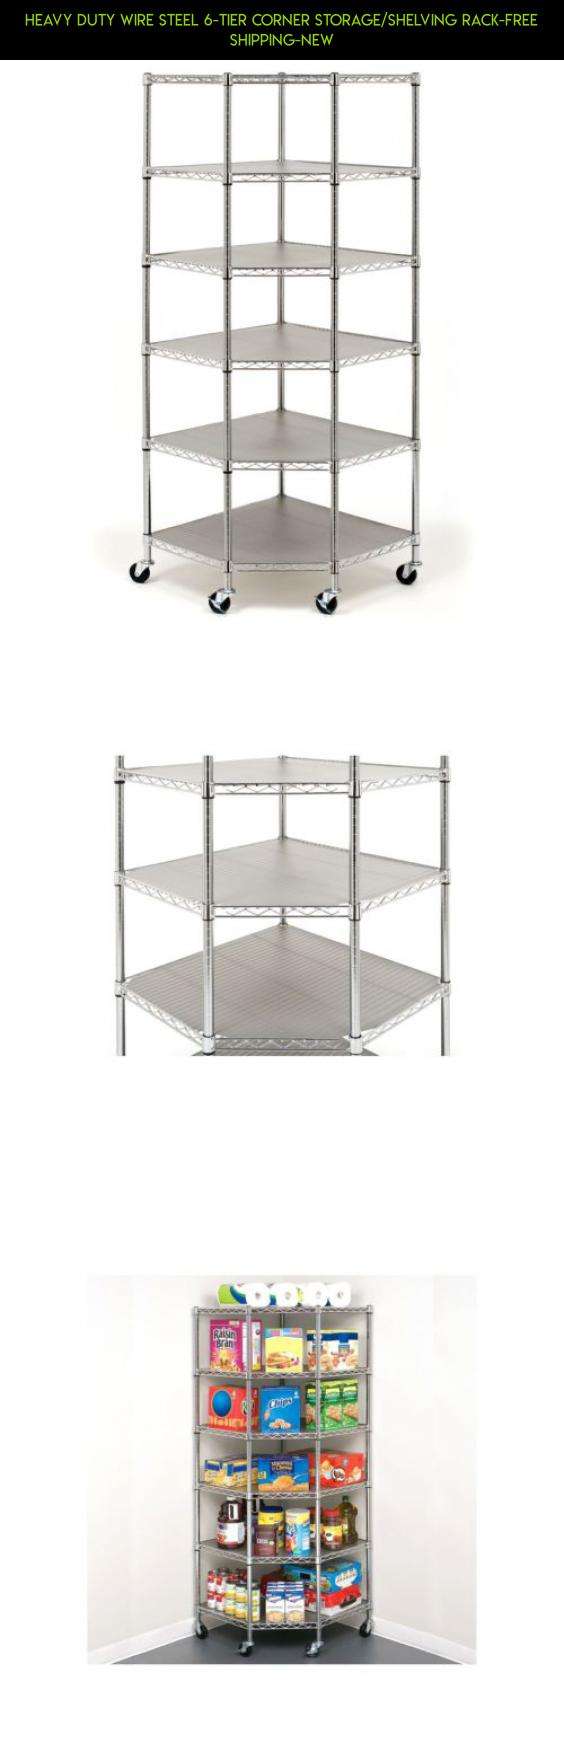 Heavy Duty Wire Steel 6-Tier Corner Storage/Shelving Rack-FREE ...